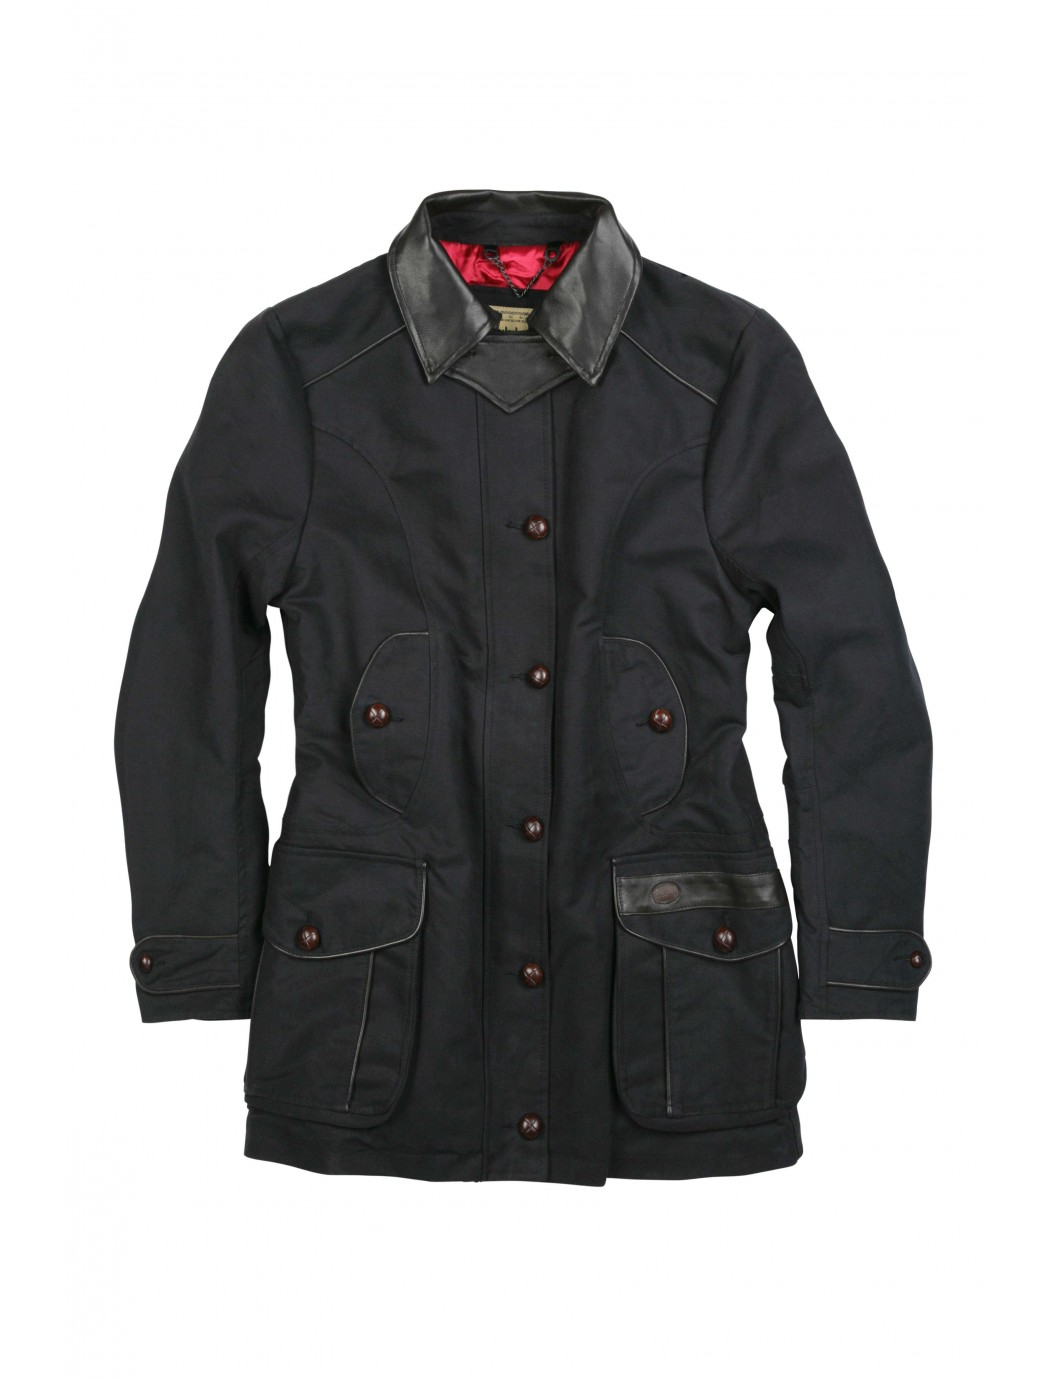 sutton-jacket-navy-dubarry-1 1